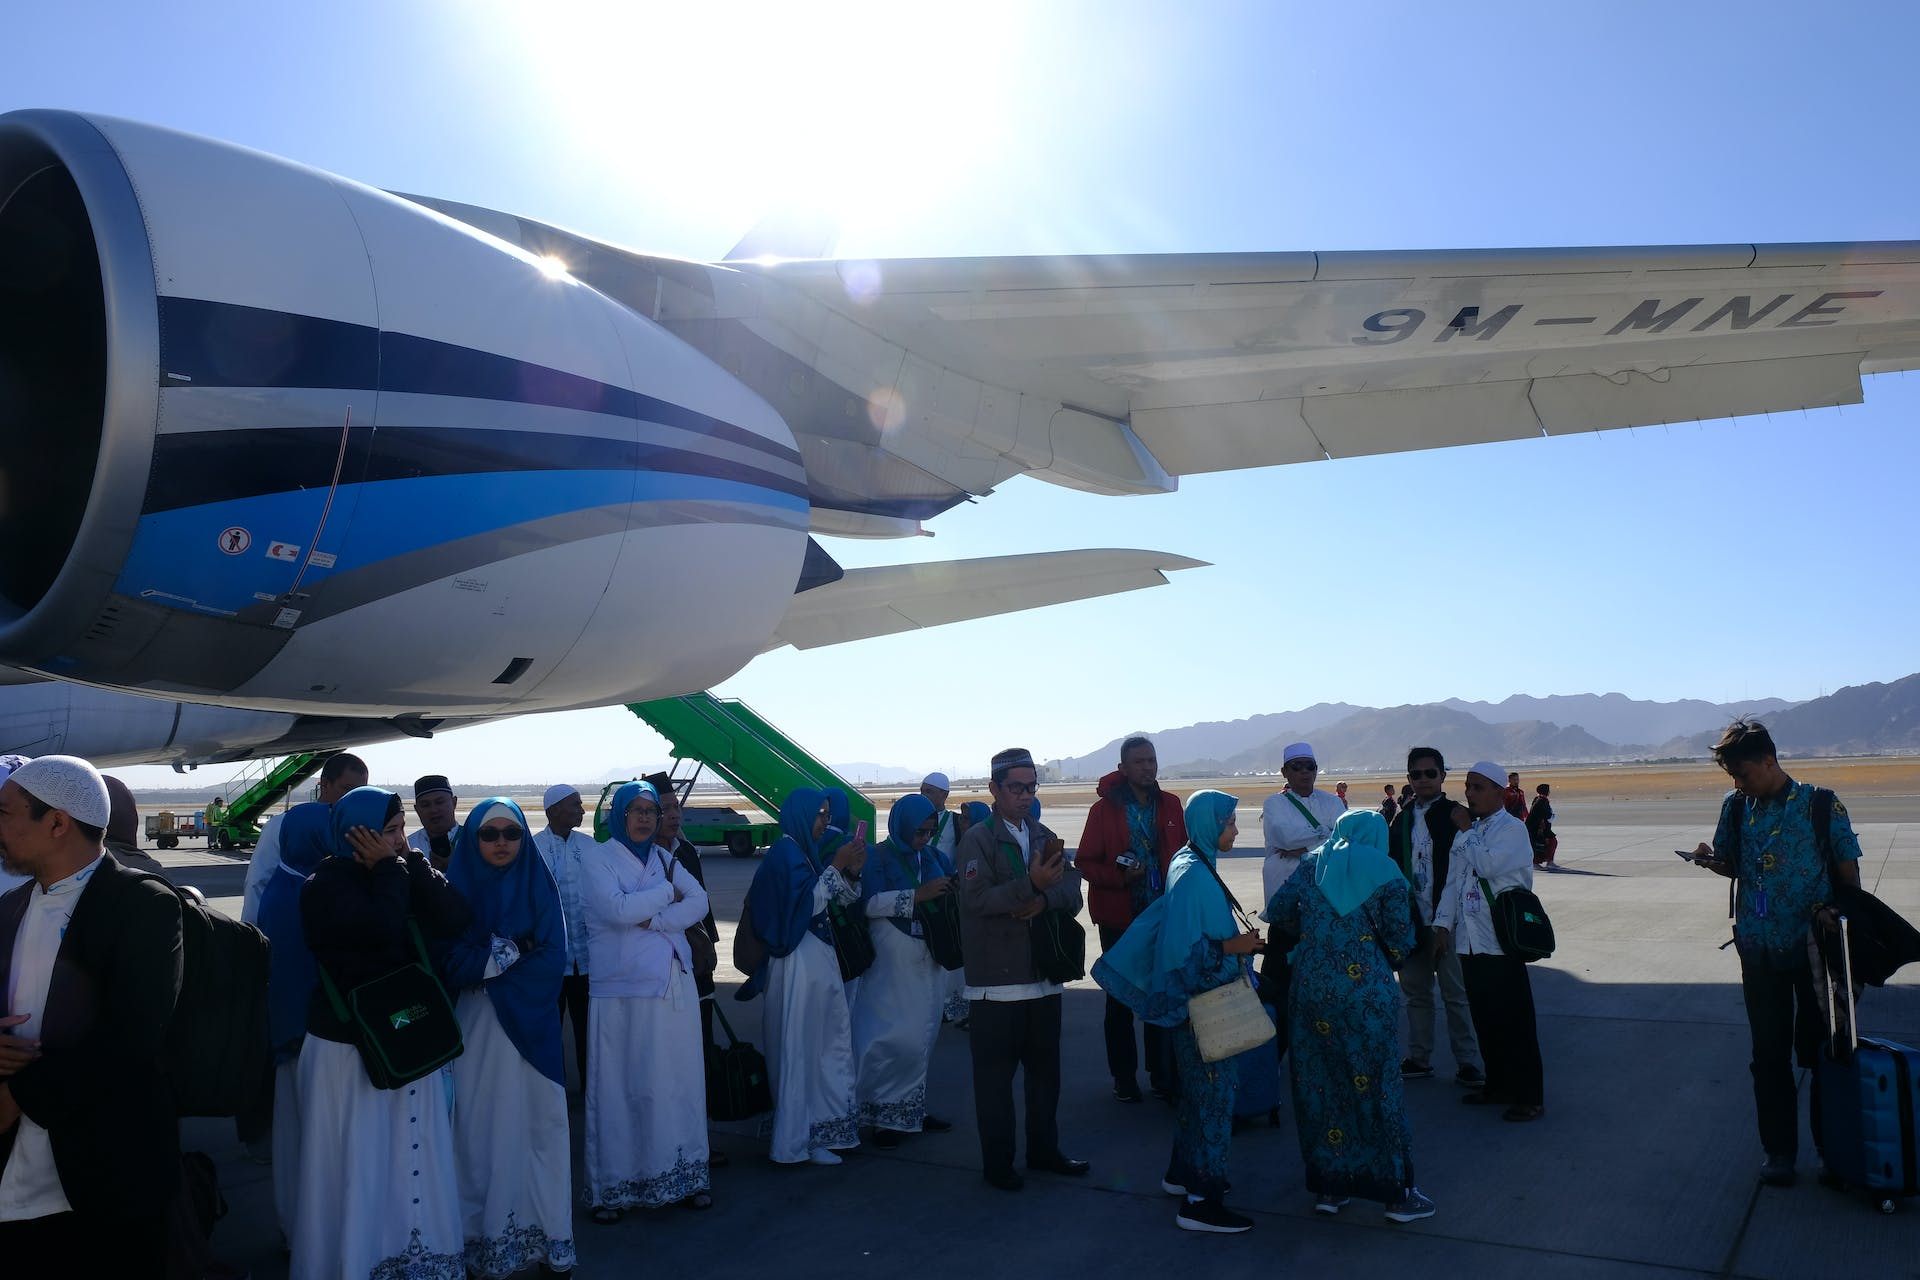 Pilgrims travelling privately to Mecca, Jerusalem or Rome enjoy privacy, comfort and safety. #caption: Pilgrimages to Mecca, Jerusalem, Lourdes or Rome can be more harmonious thanks to the comfort, safety and privacy of charter flights.